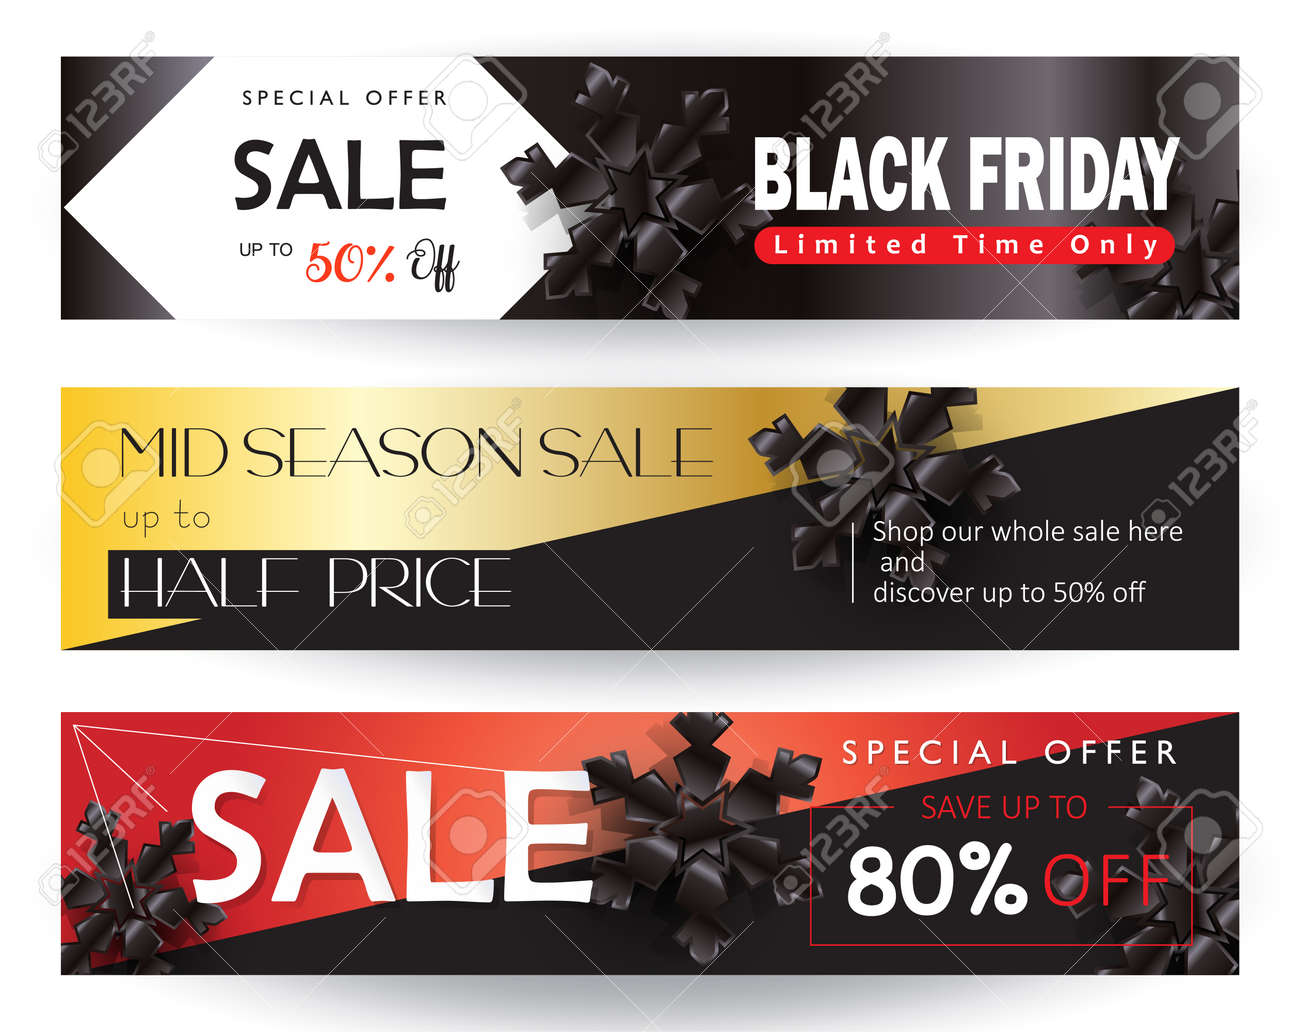 Black Friday Sale Discount Special Offer Web Banners Set Template Royalty Free Cliparts Vectors And Stock Illustration Image 90247228